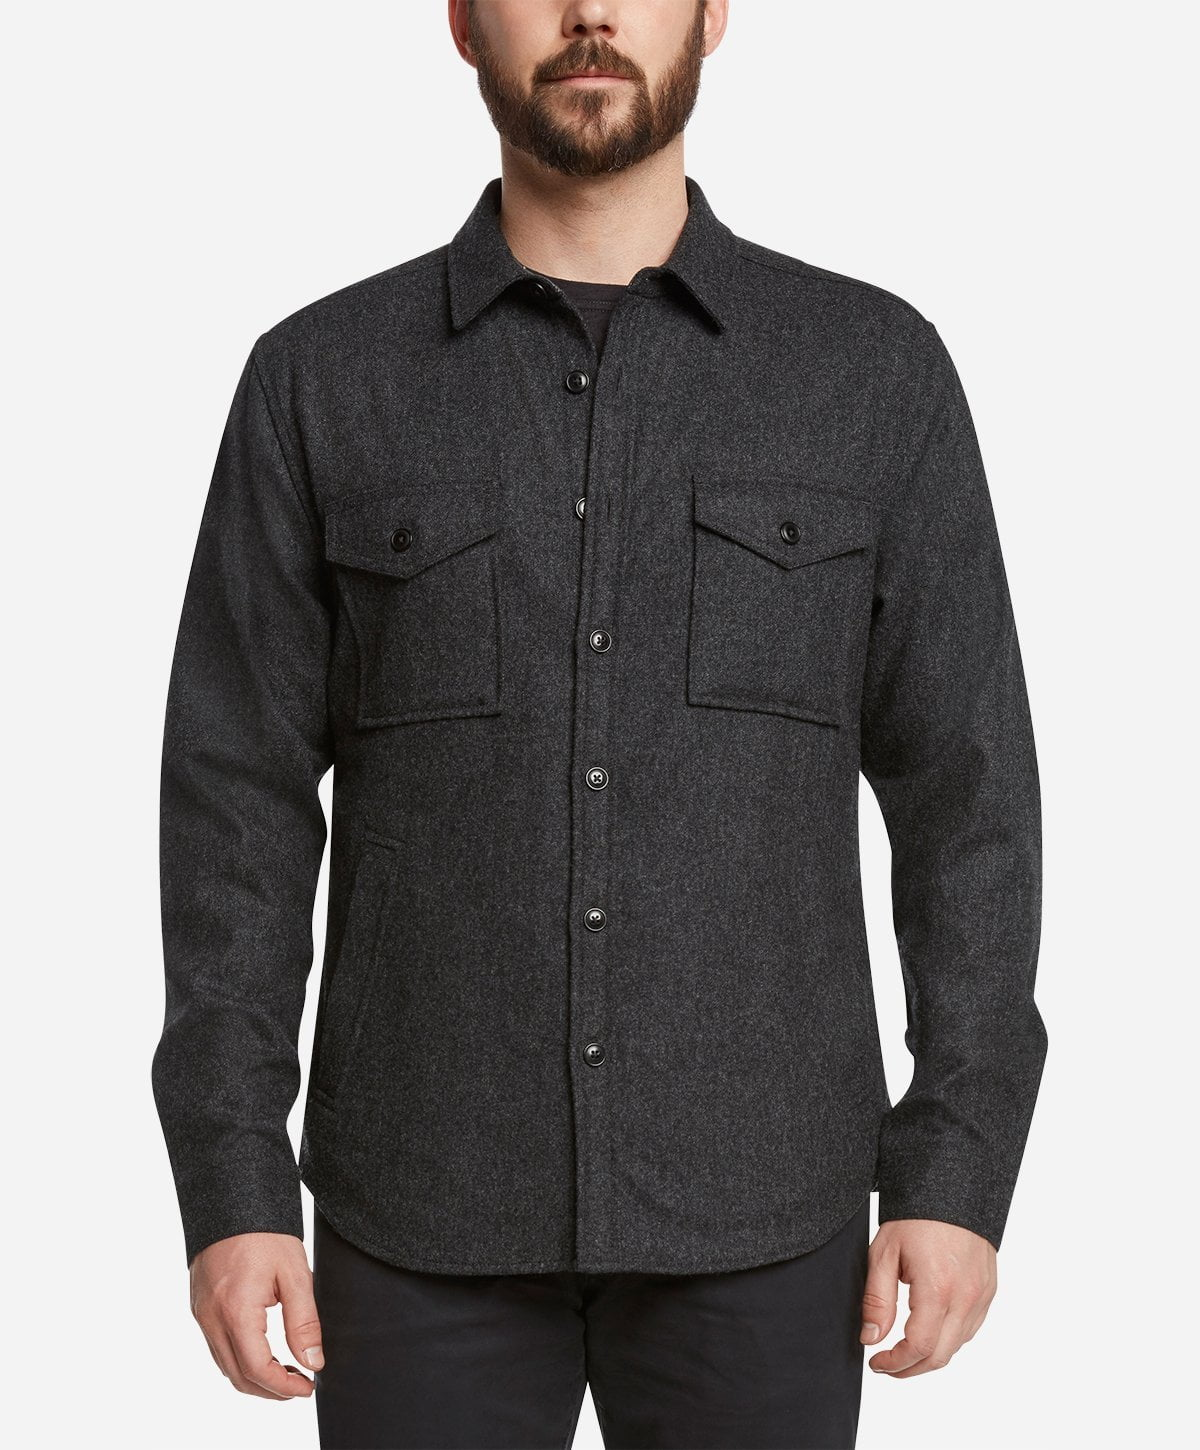 Sahara Shirt Jacket - Heather Charcoal